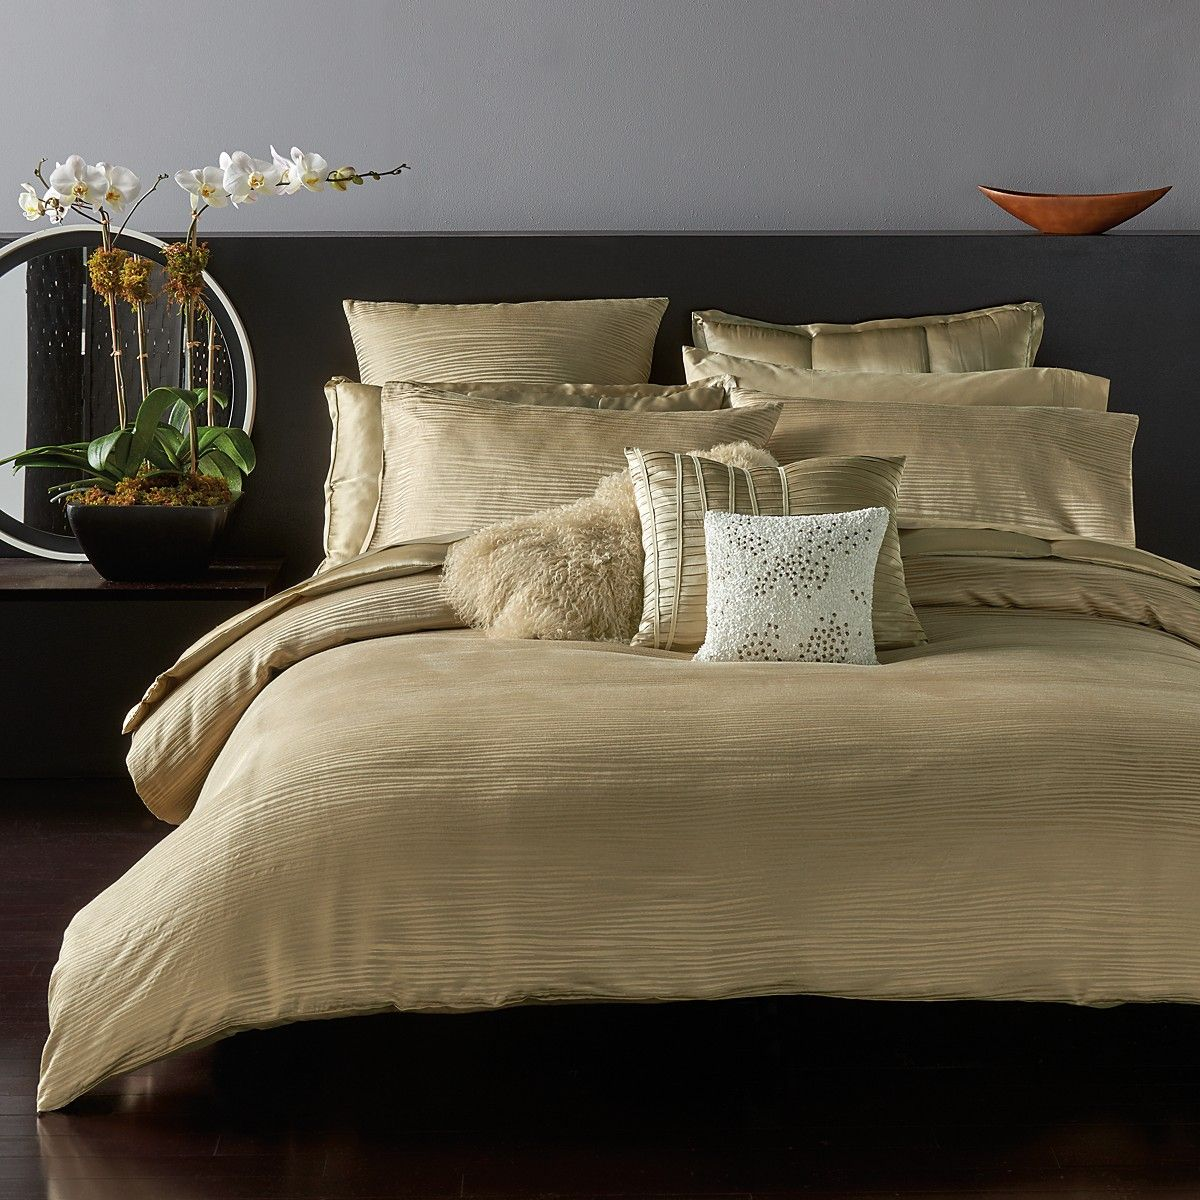 Reflection Bedding Collection Luxurious Bedrooms Gold Duvet Modern Bedroom Decor